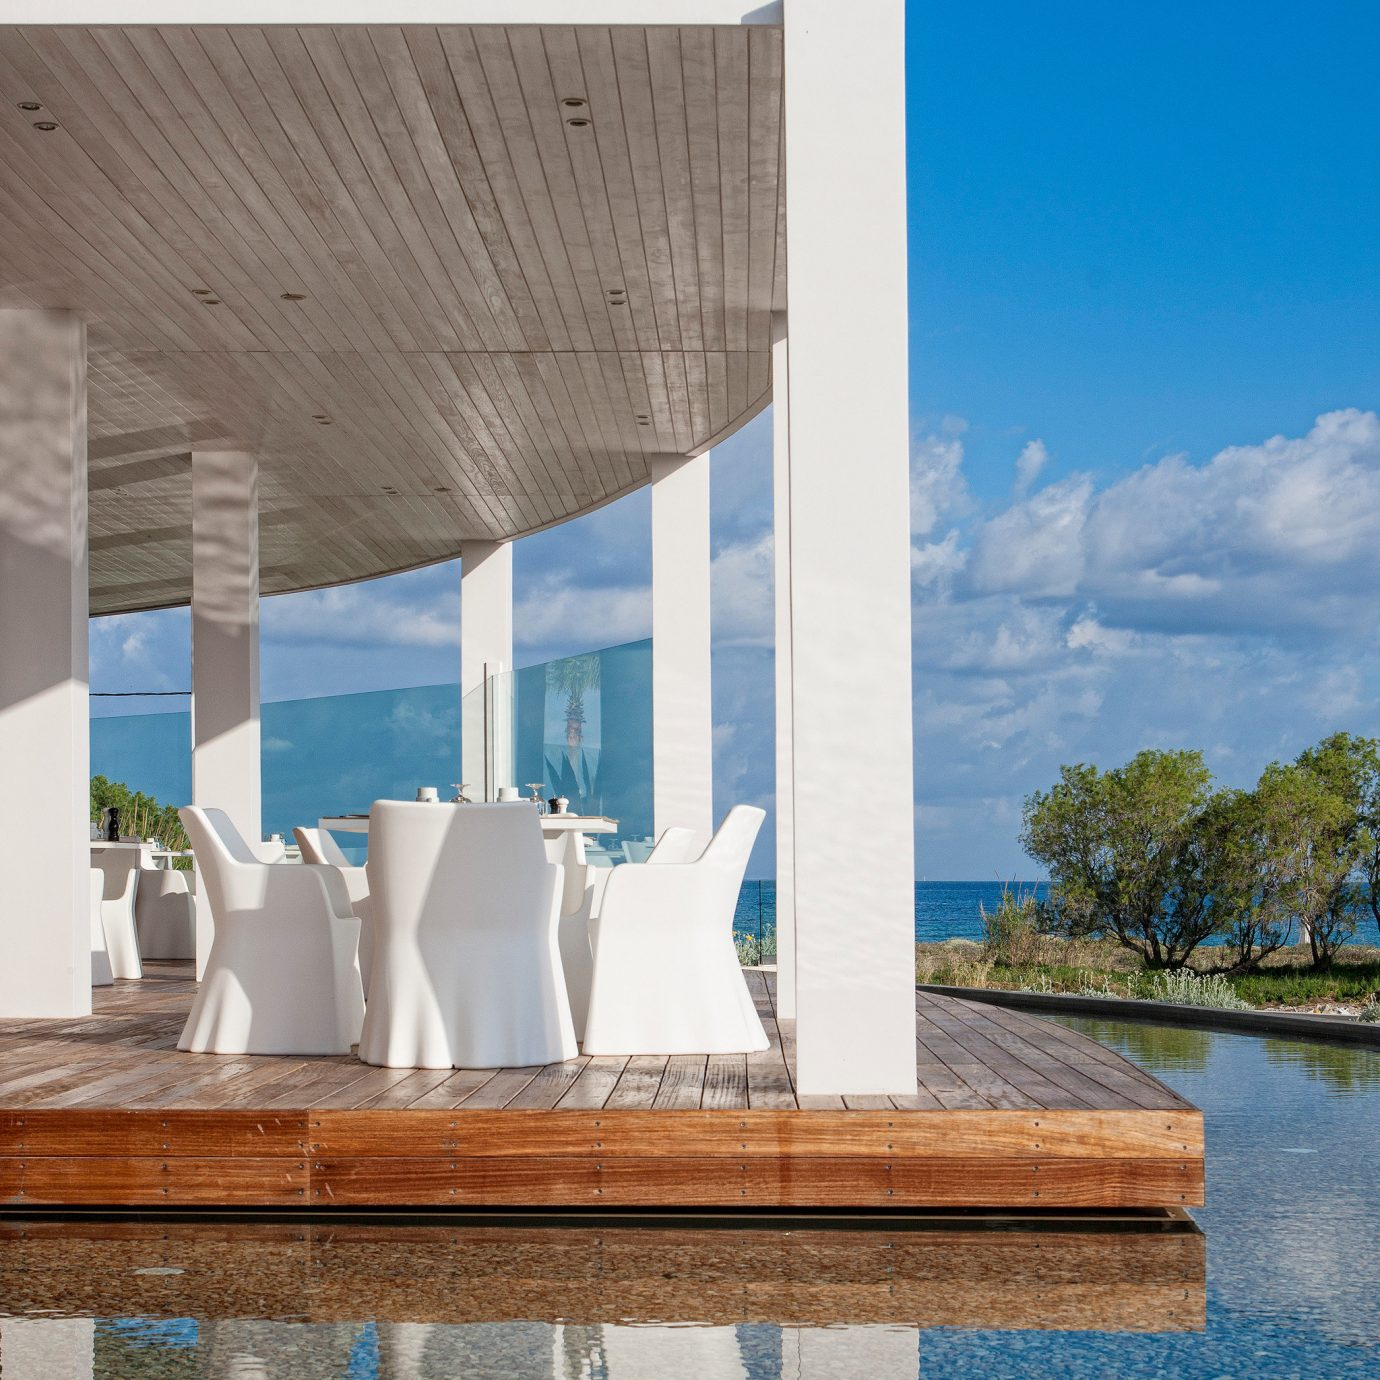 Architecture Bar Cultural Deck Dining Drink Eat Hip Honeymoon Scenic views Waterfront blue landmark house tower